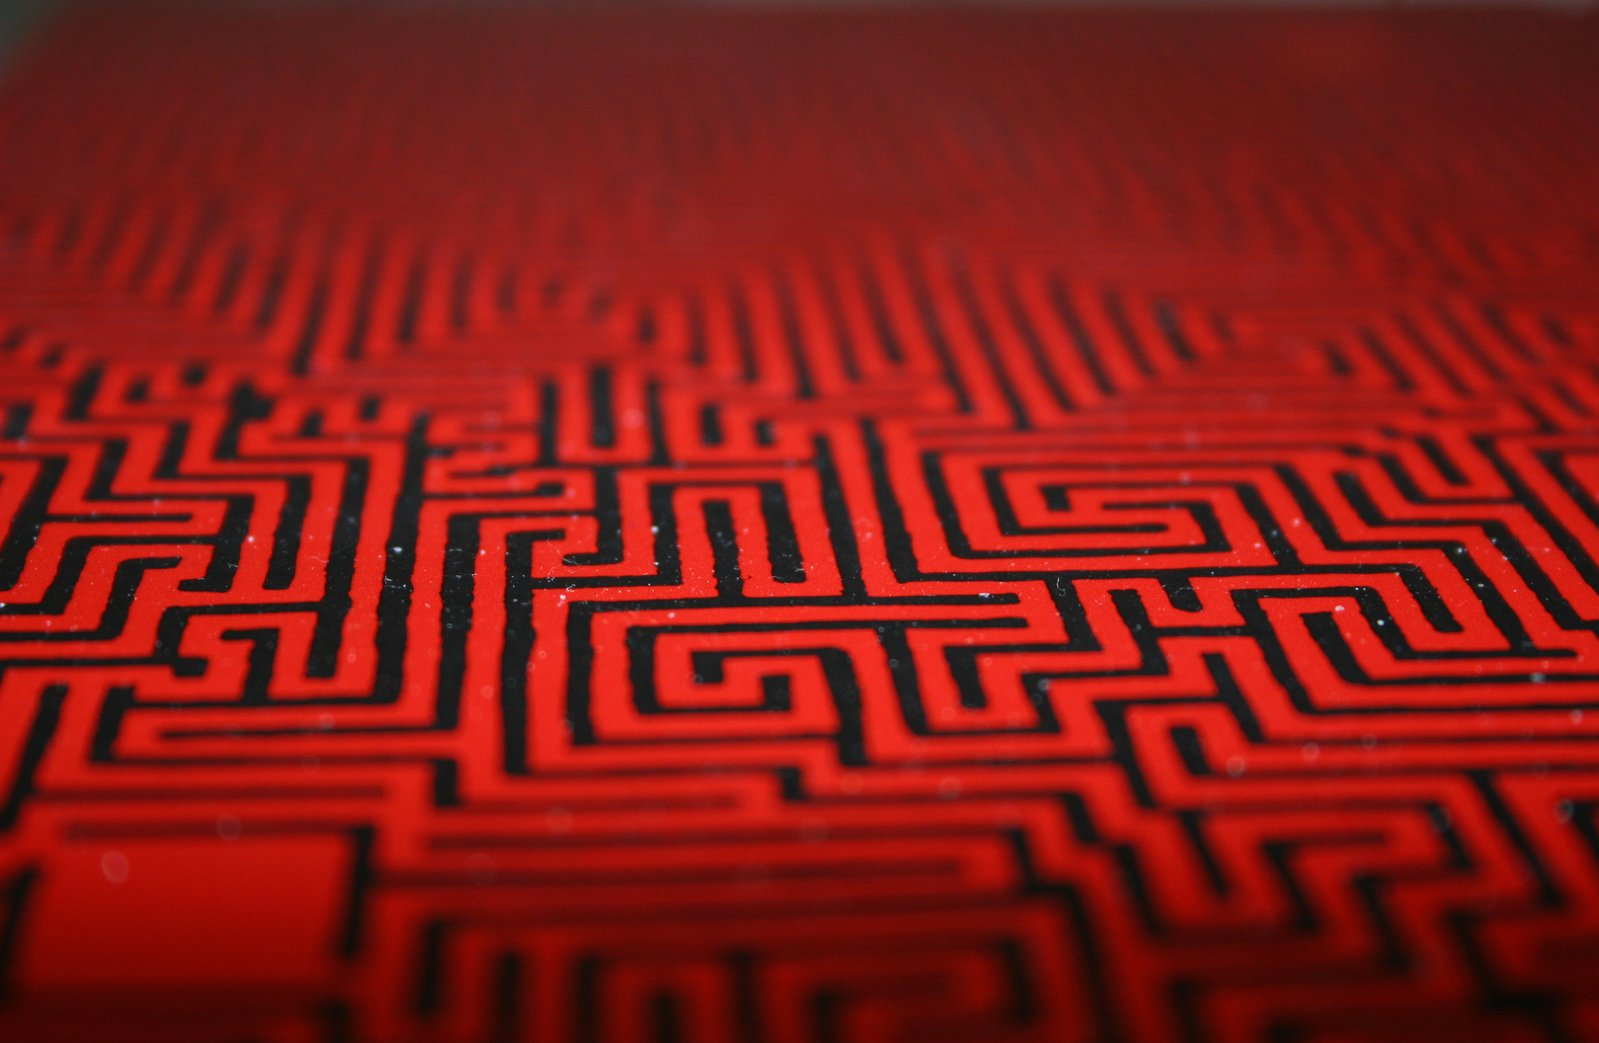 Red Book Cover Pattern : Free red pattern book cover stock photo freeimages